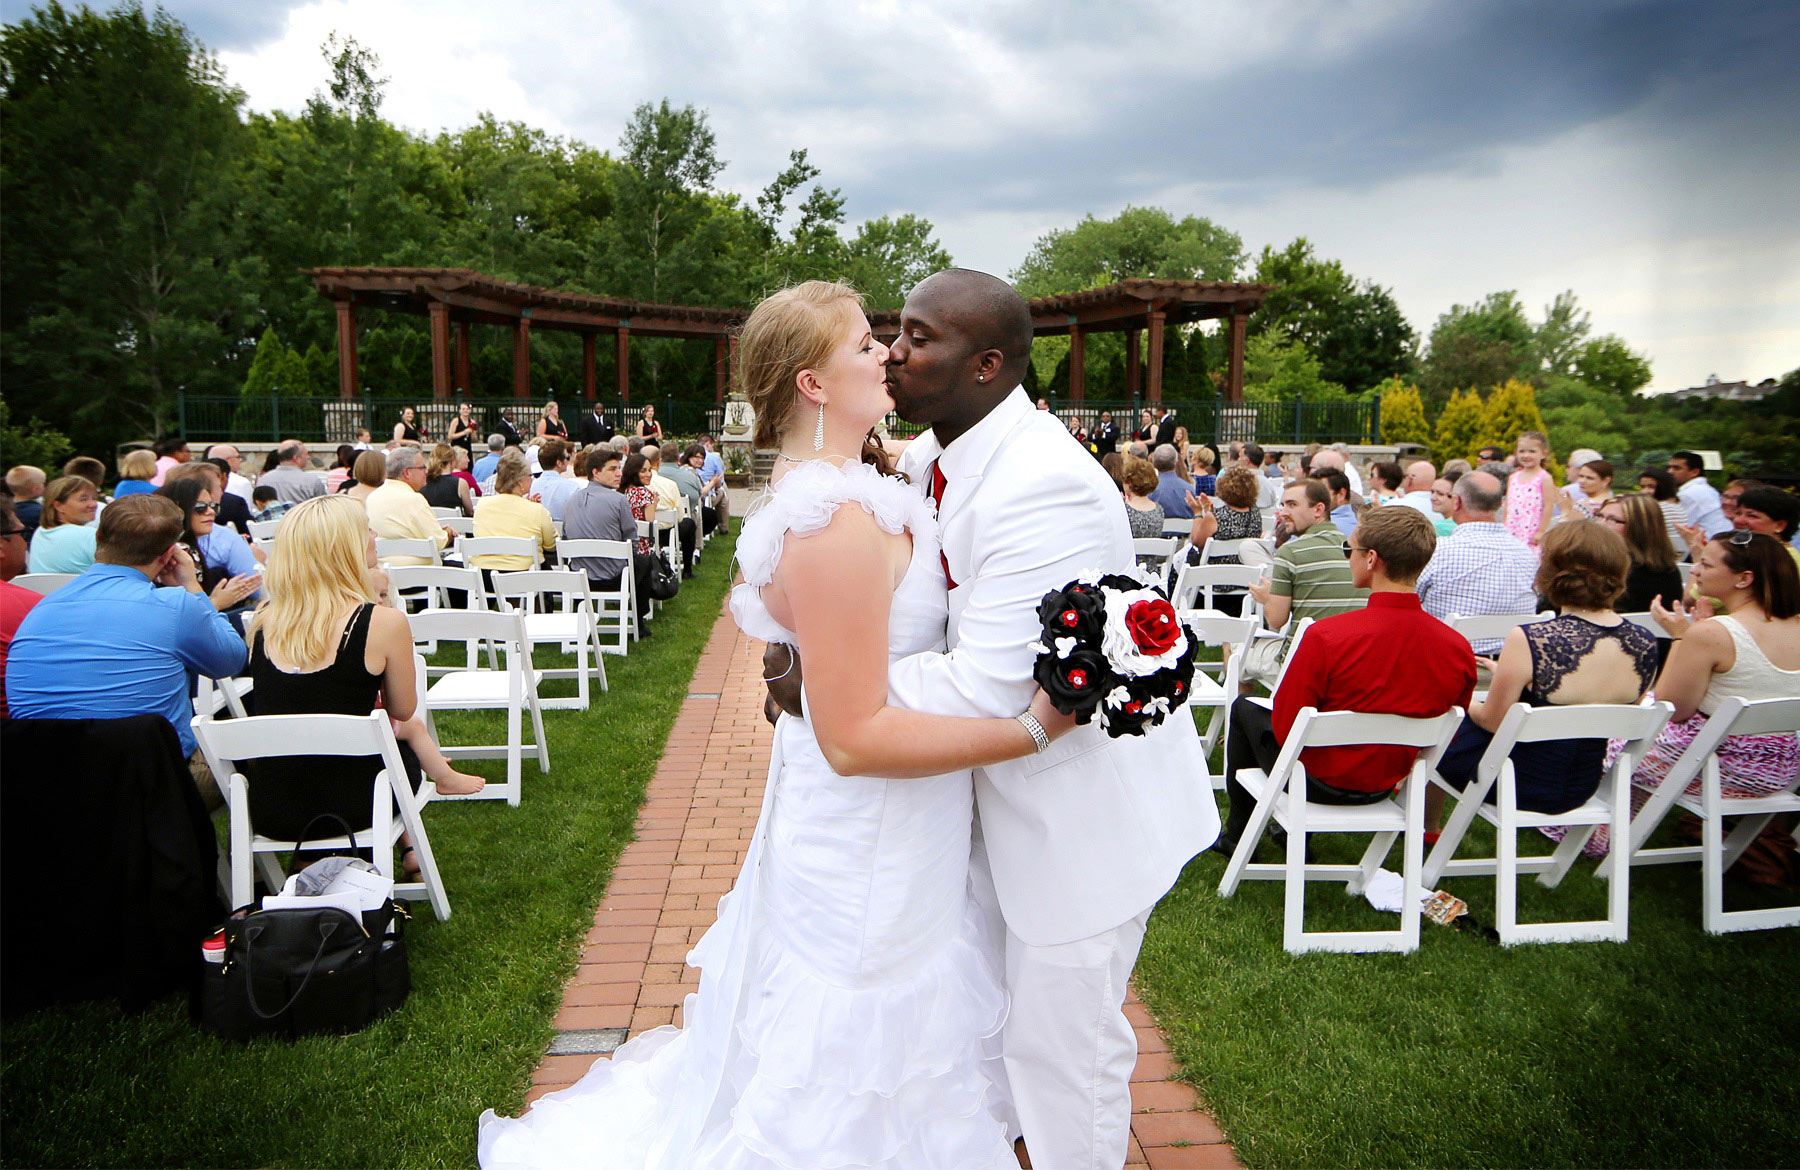 09-Minneapolis-Minnesota-Wedding-Photography-by-Vick-Photography-at-Plymouth-Creek-Center-Outdoor-Ceremony-Emily-&-Lonnie.jpg